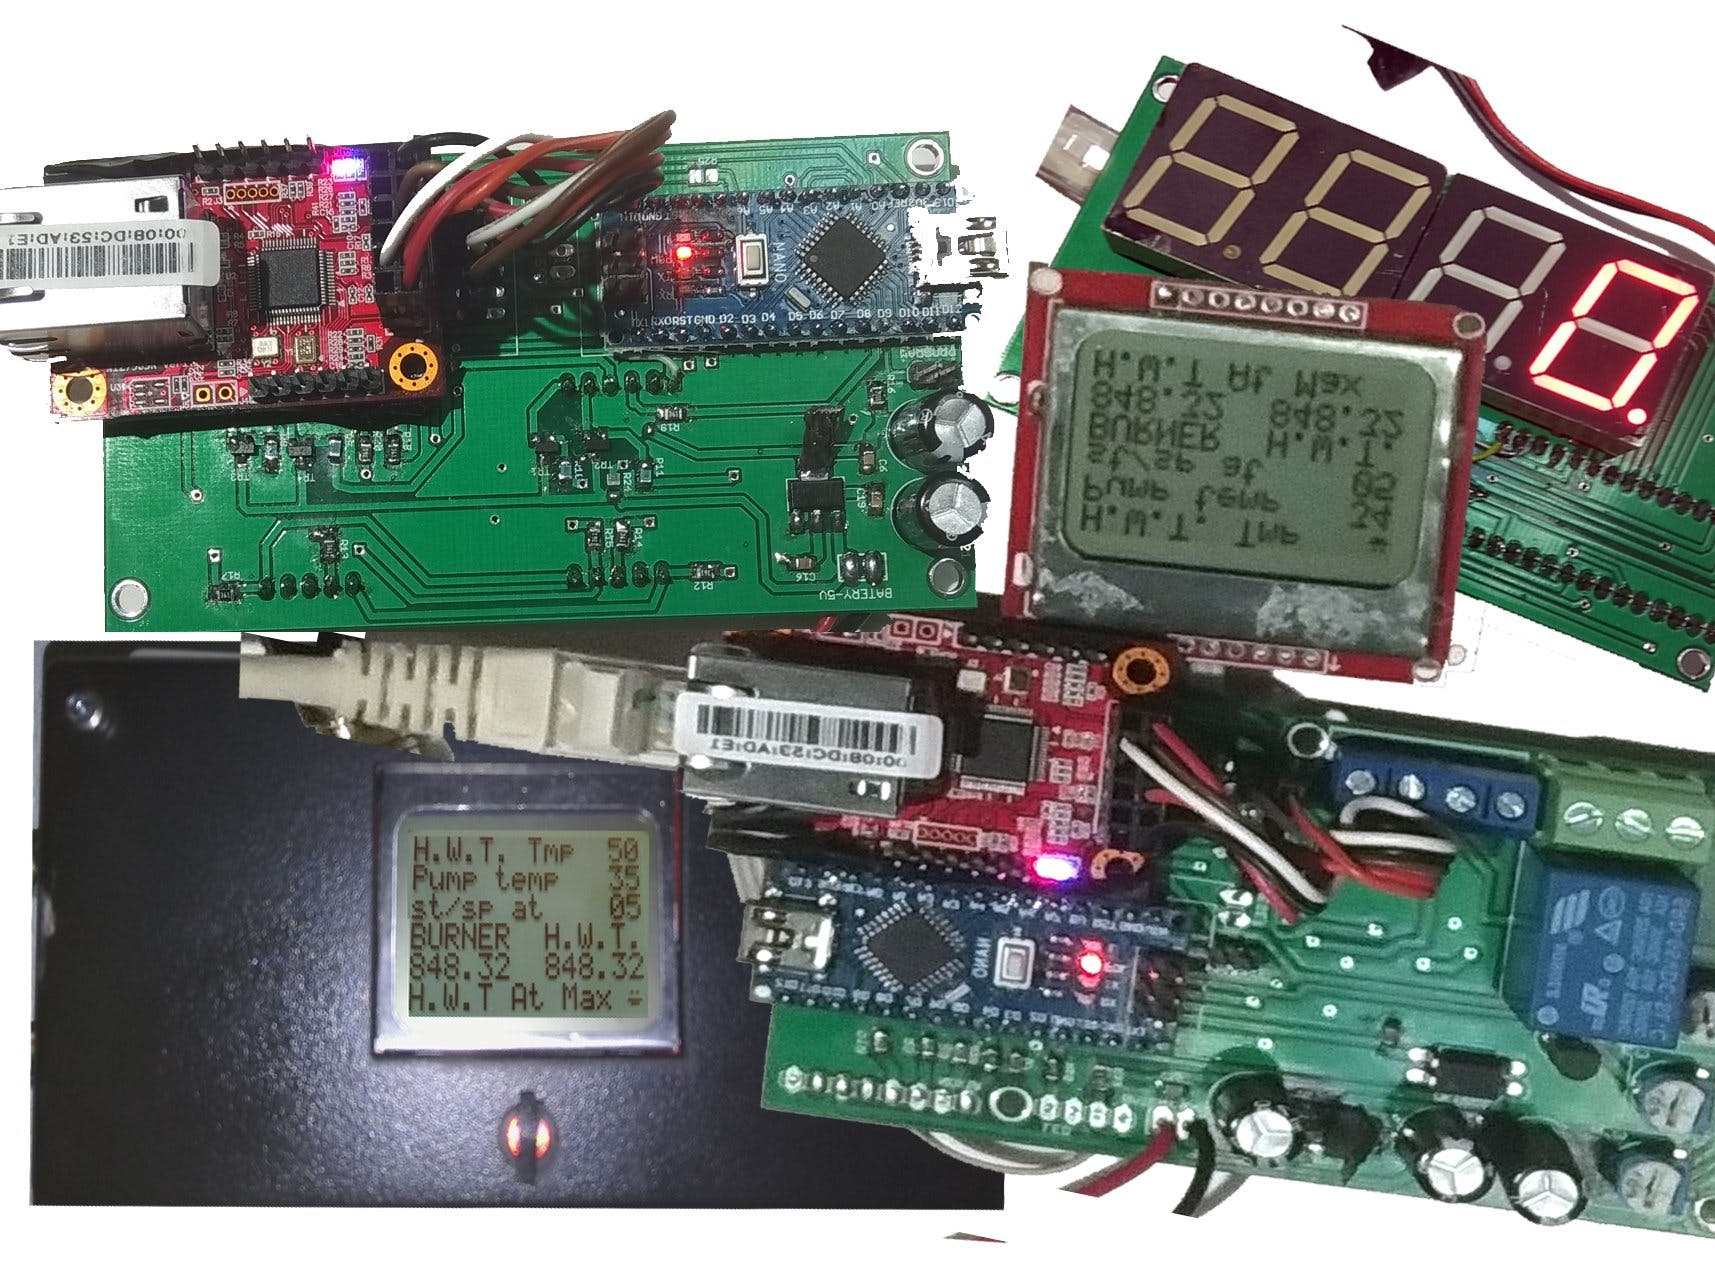 Digital thermostat for burner and boiler with remote monitor